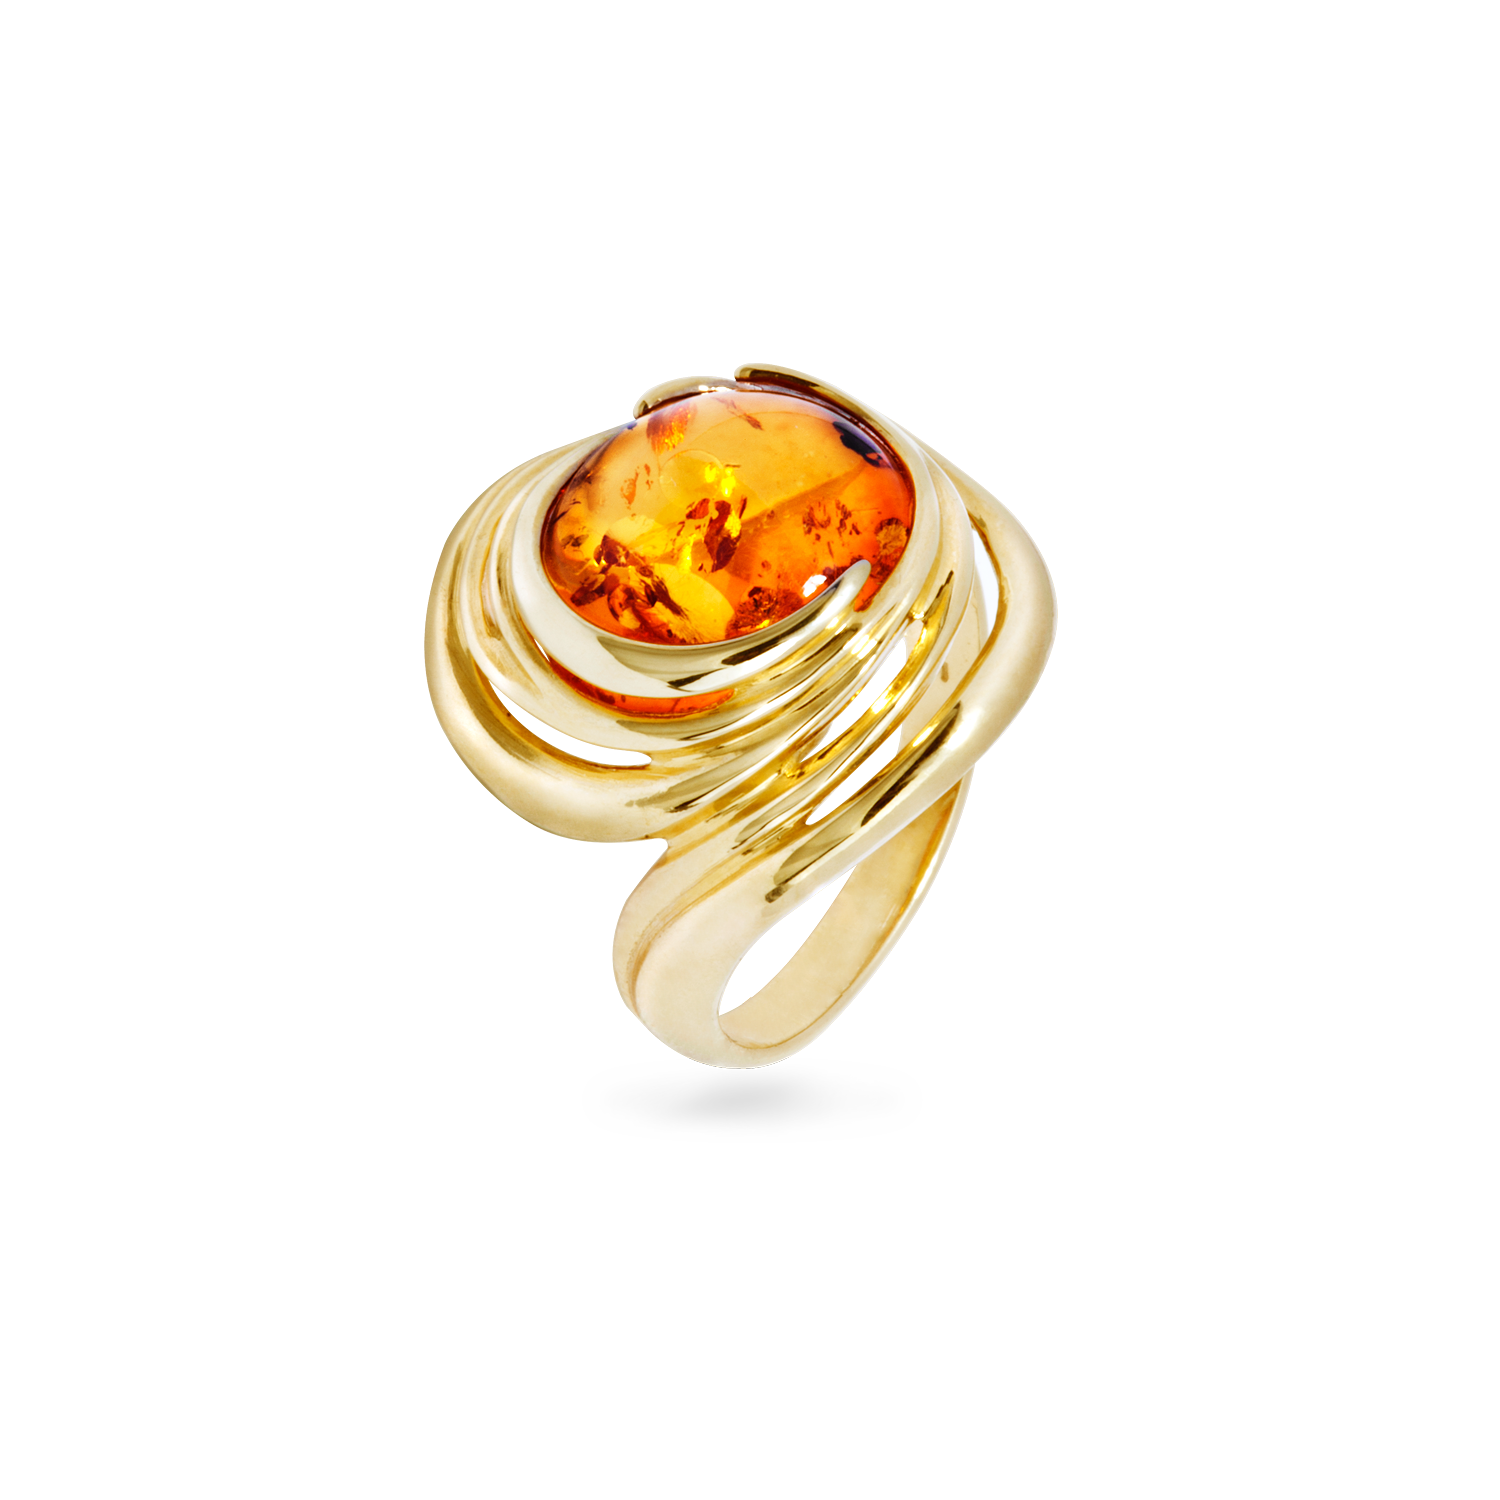 rings z ring plating zirconia pin white sterling clear amber rose collette silver engagement cubic